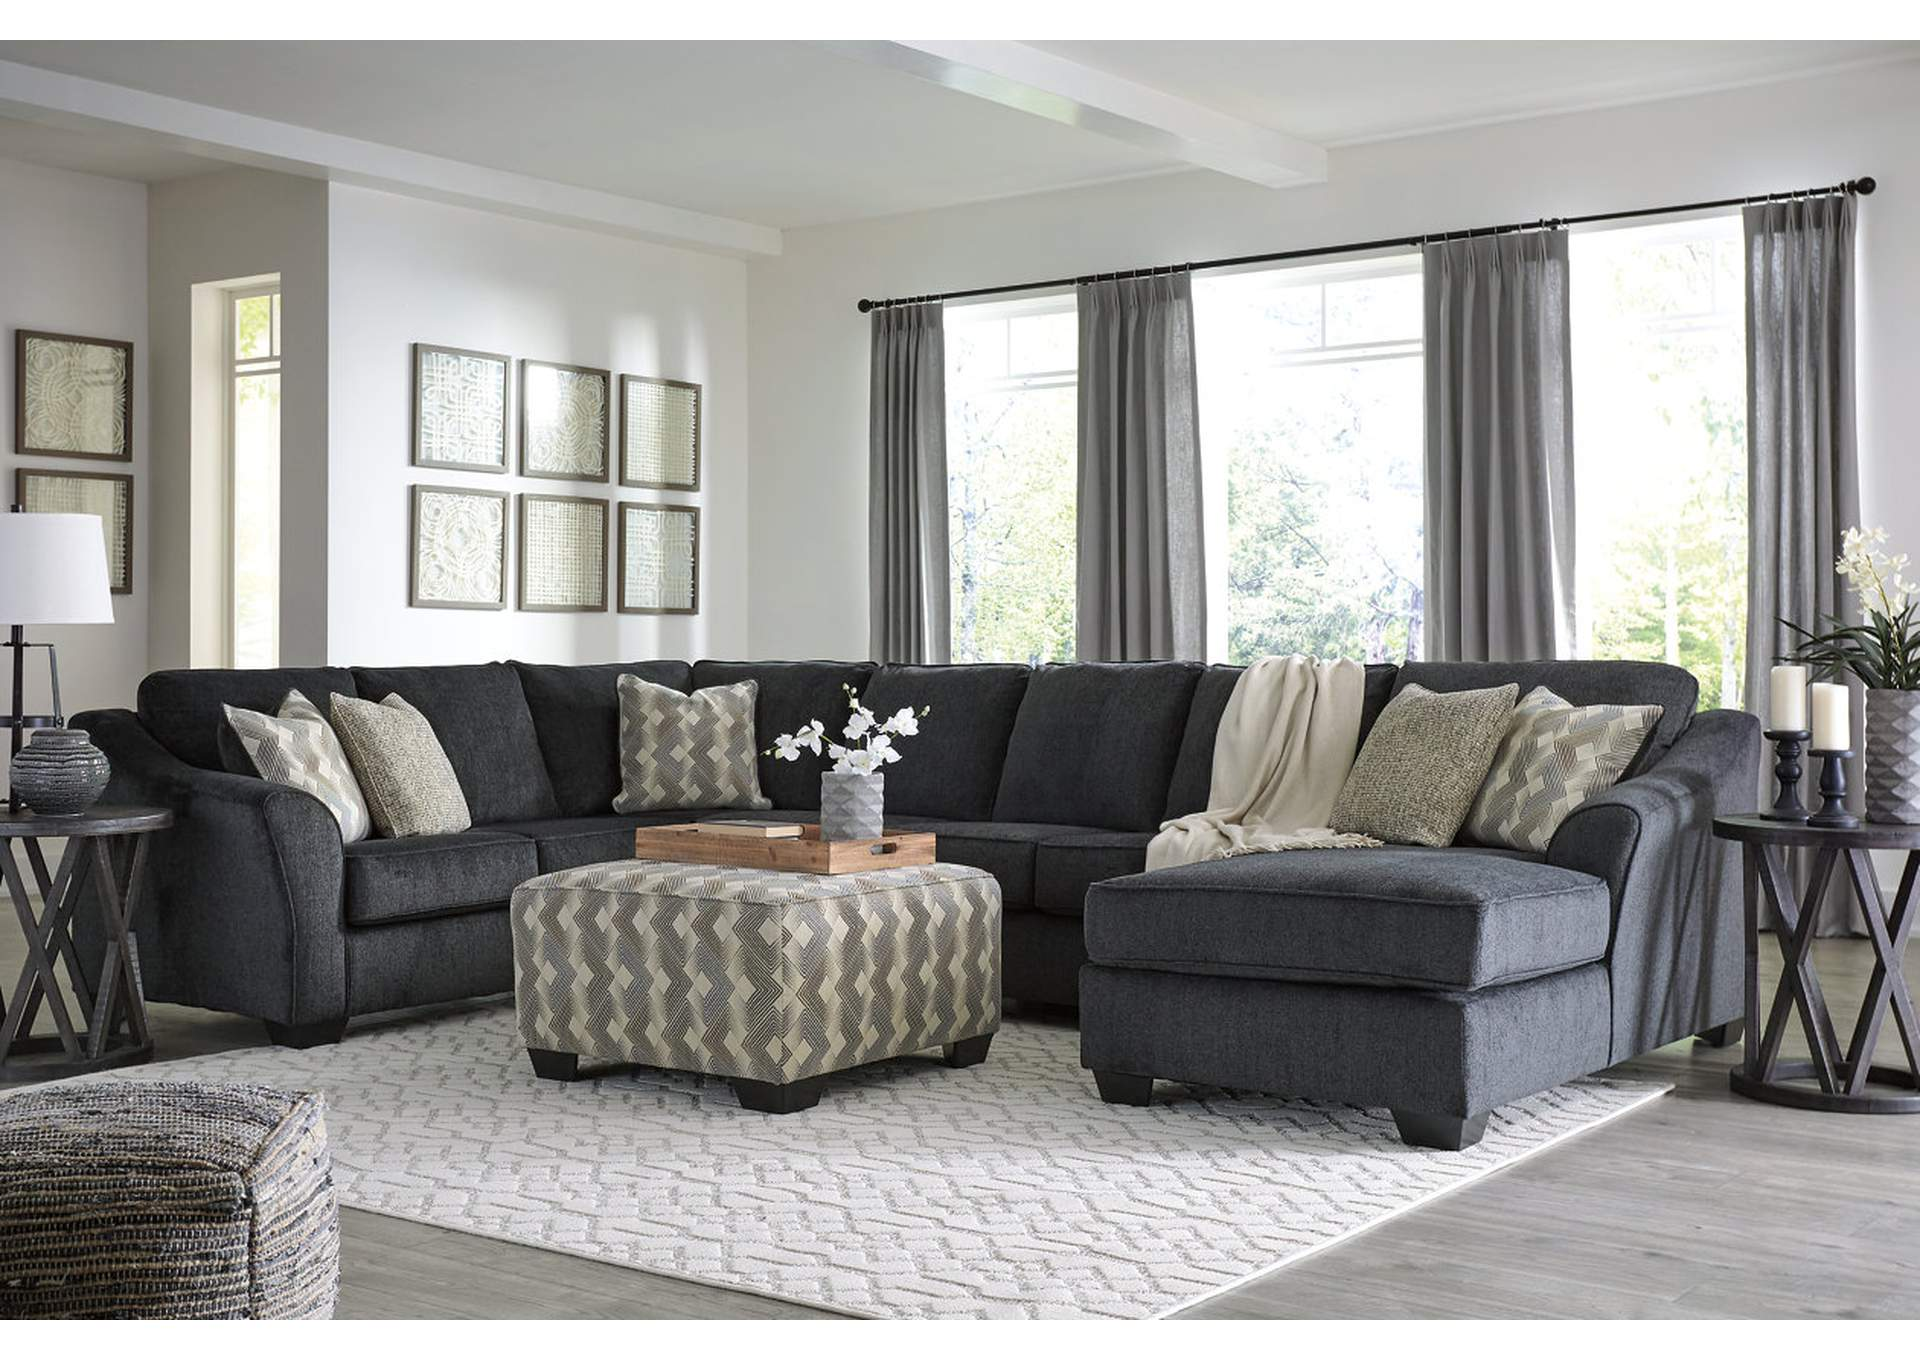 Eltmann Slate RAF Chaise Sectional,Signature Design By Ashley